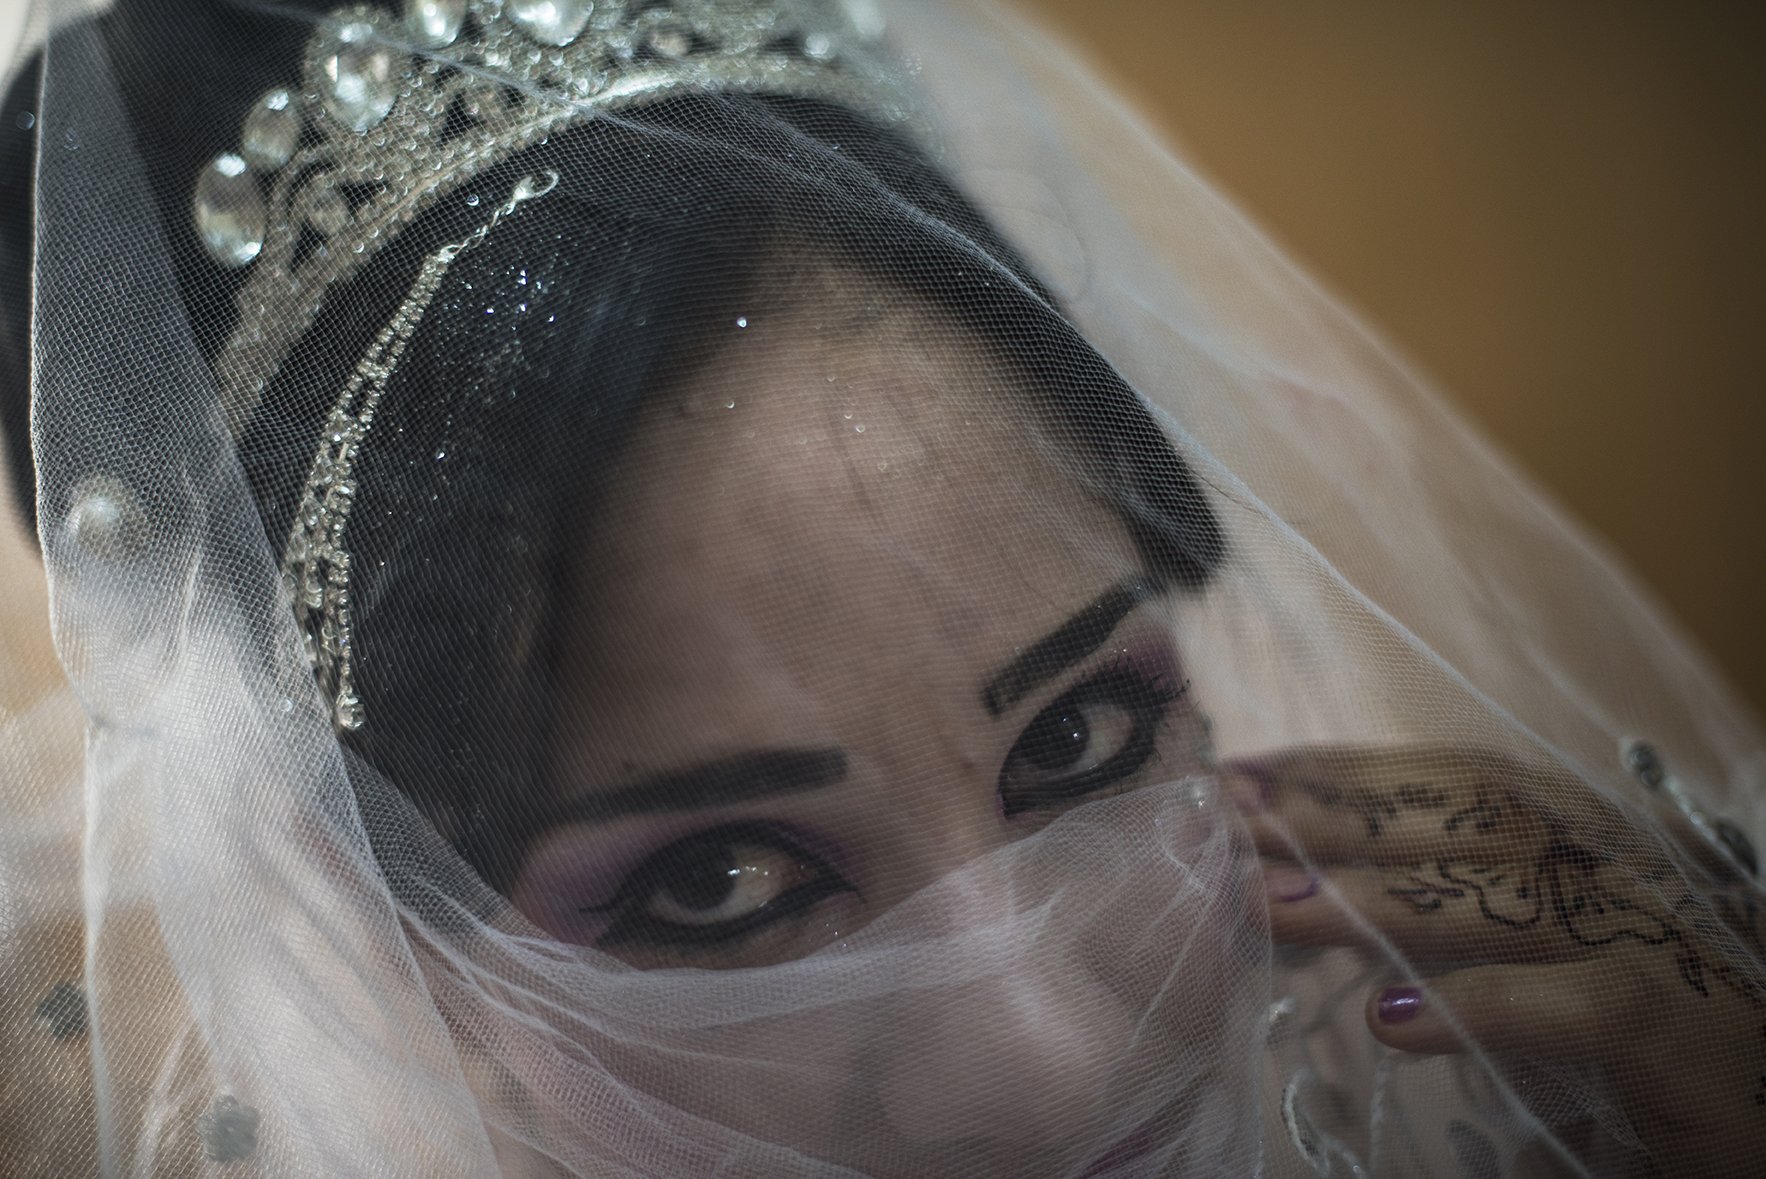 Noor, age unknown (roughly 16), prepares for her wedding later that day in a beauty salon in the Zaatari refugee camp in Jordan, August 25, 2014. While marriage under the age of eighteen was a common Syrian tradition before the start of the civil war, more and more Syrian girls are marrying at a younger age because of the insecurity of the war,  because many families feel the girls in their family may be sexually harassed if they are not under the care of a husband, and because of prospect of alleviating the financial burden of one more mouth to feed.